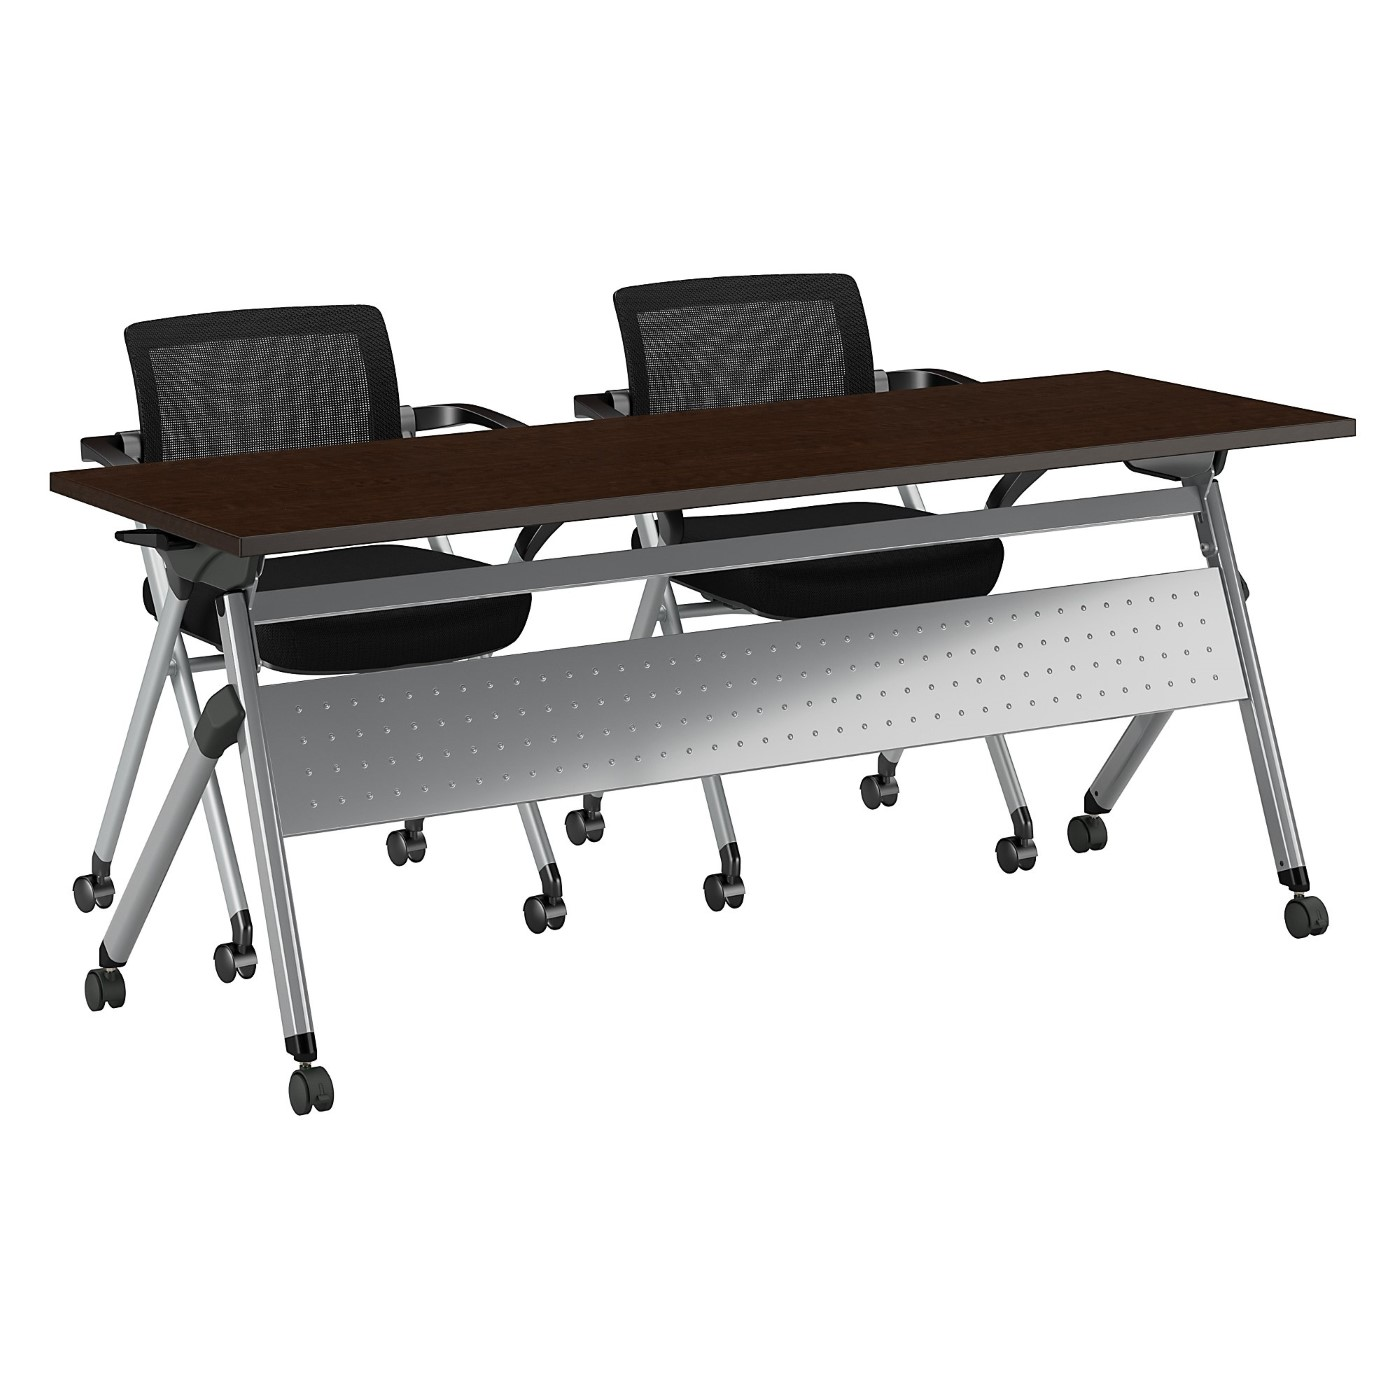 BUSH BUSINESS FURNITURE 72W X 24D FOLDING TRAINING TABLE WITH SET OF 2 FOLDING CHAIRS. FREE SHIPPING